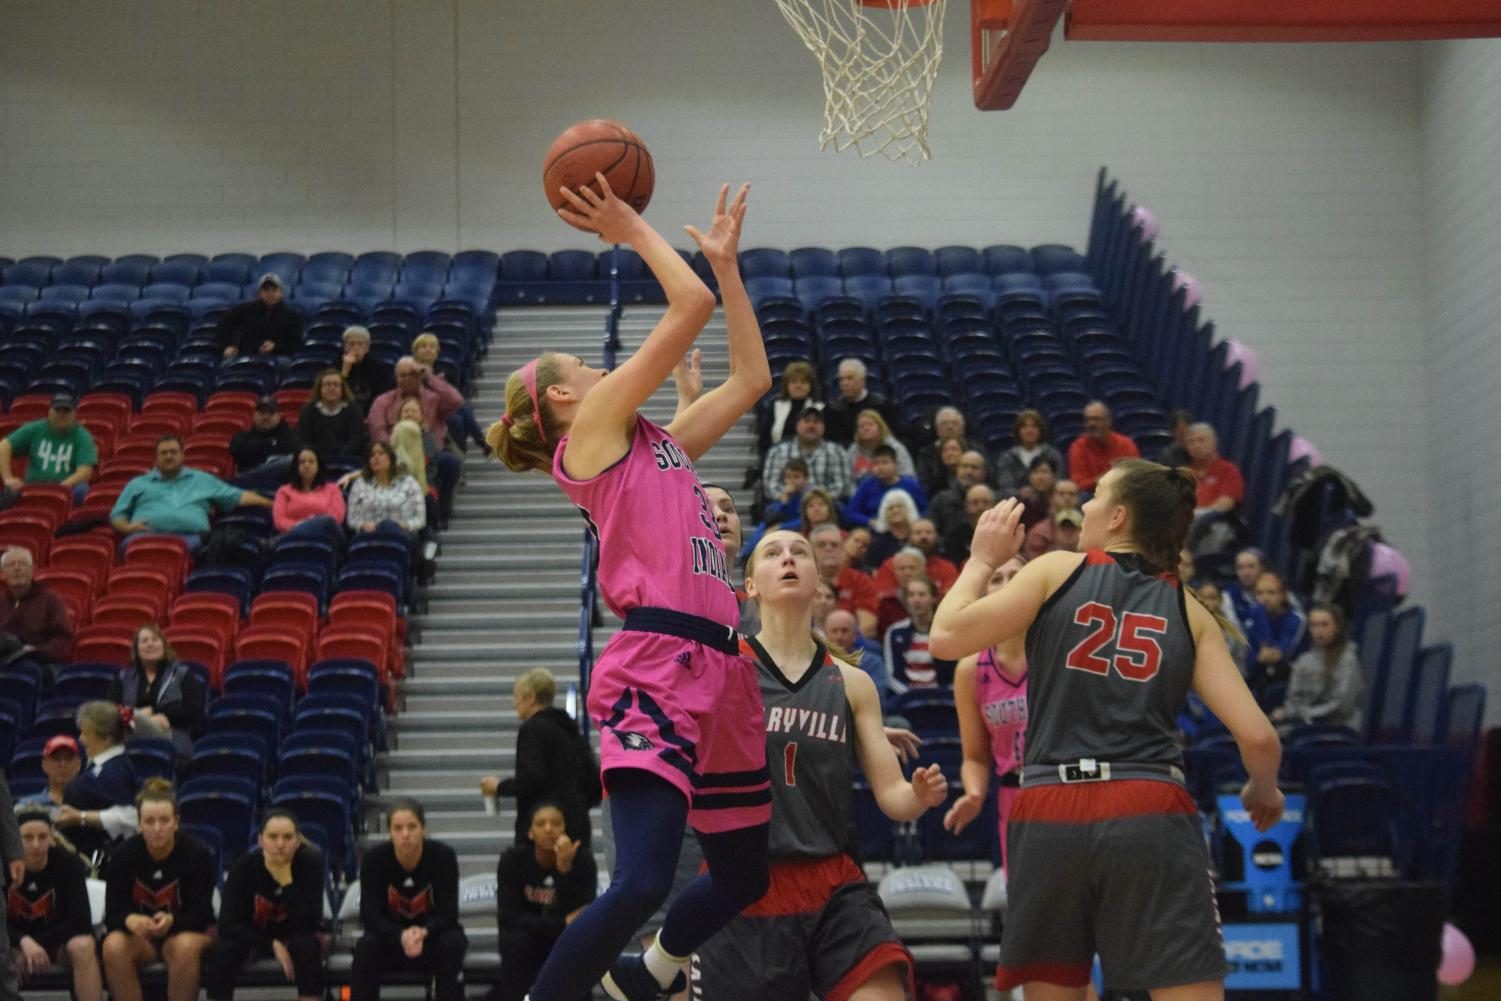 Kaydie+Grooms%2C+senior+guard%2C+goes+up+for+a+layup+against+Maryville+University.